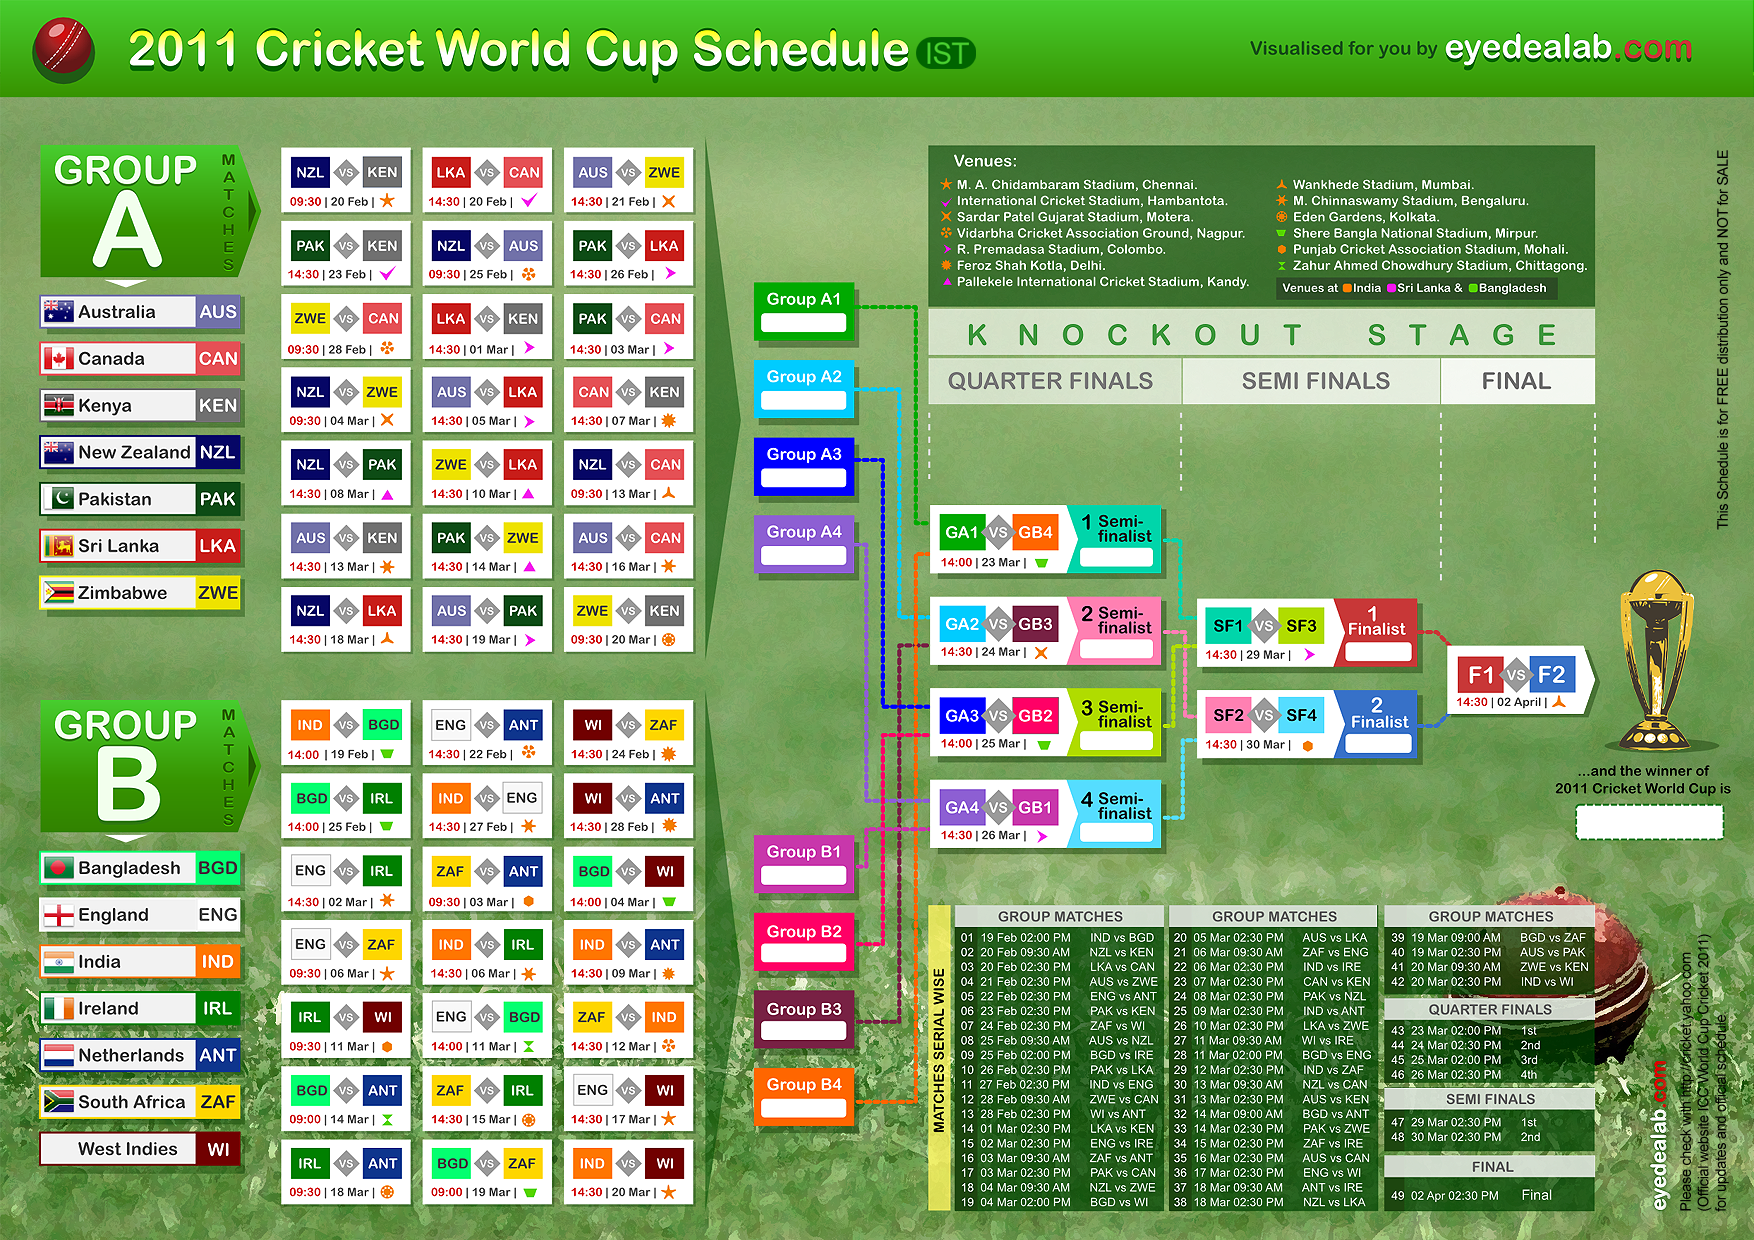 icc cricket events